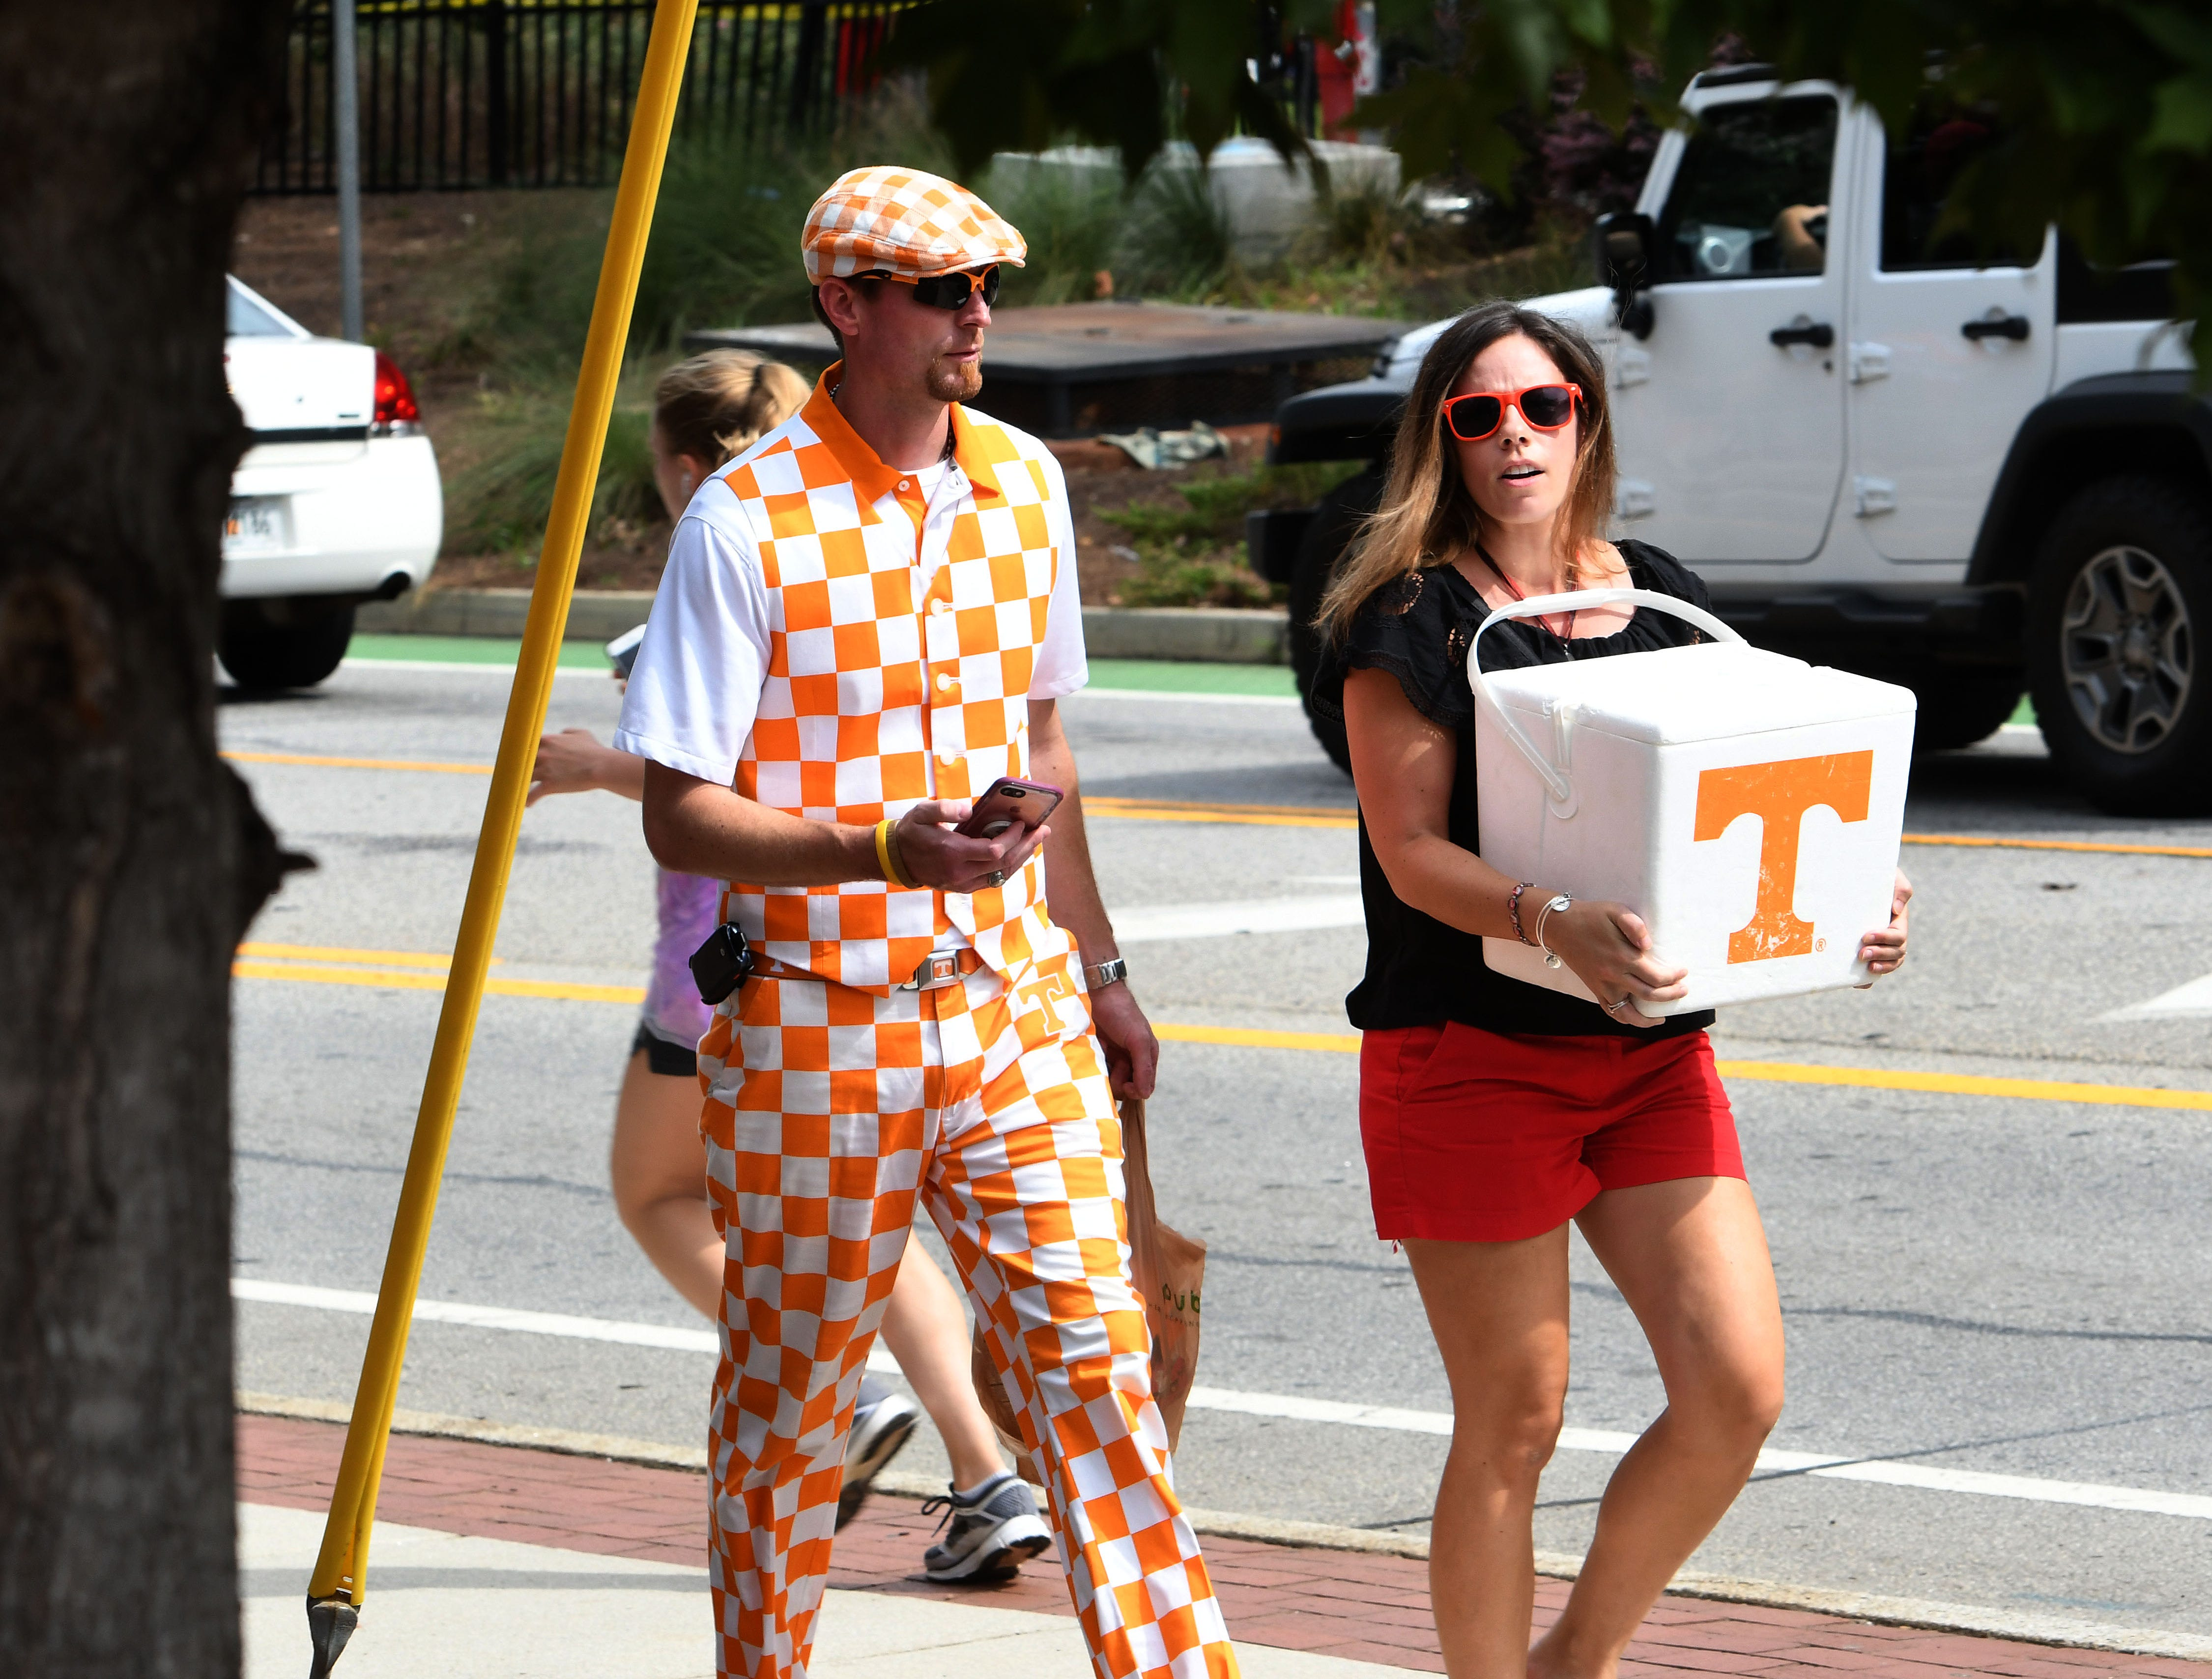 Tennessee fans were scarce during pre-game activities before the Georgia game Saturday, September 29, 2018 at Sanford Stadium in Athens, GA.